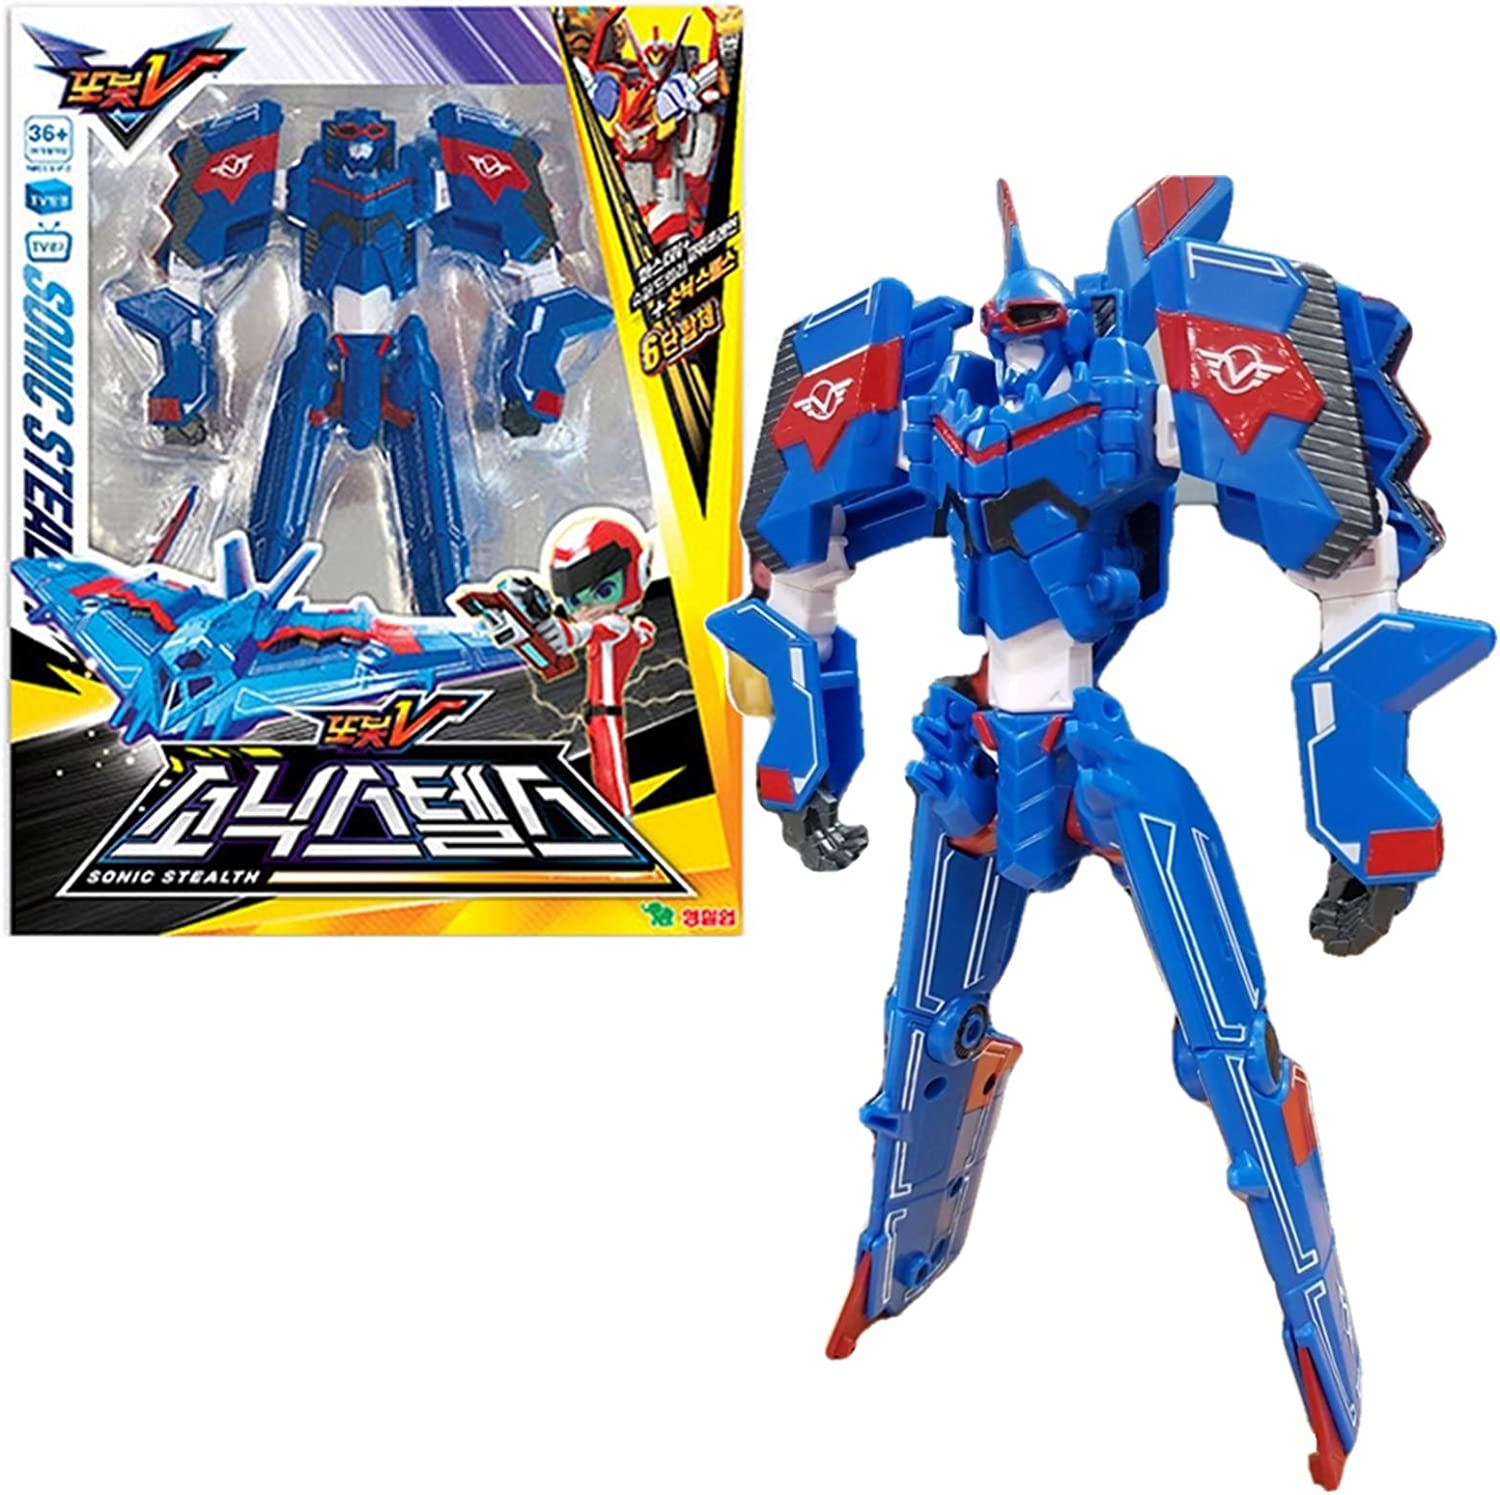 Tobot V Sonic Stealth Transforming Robot Action Figure Toy